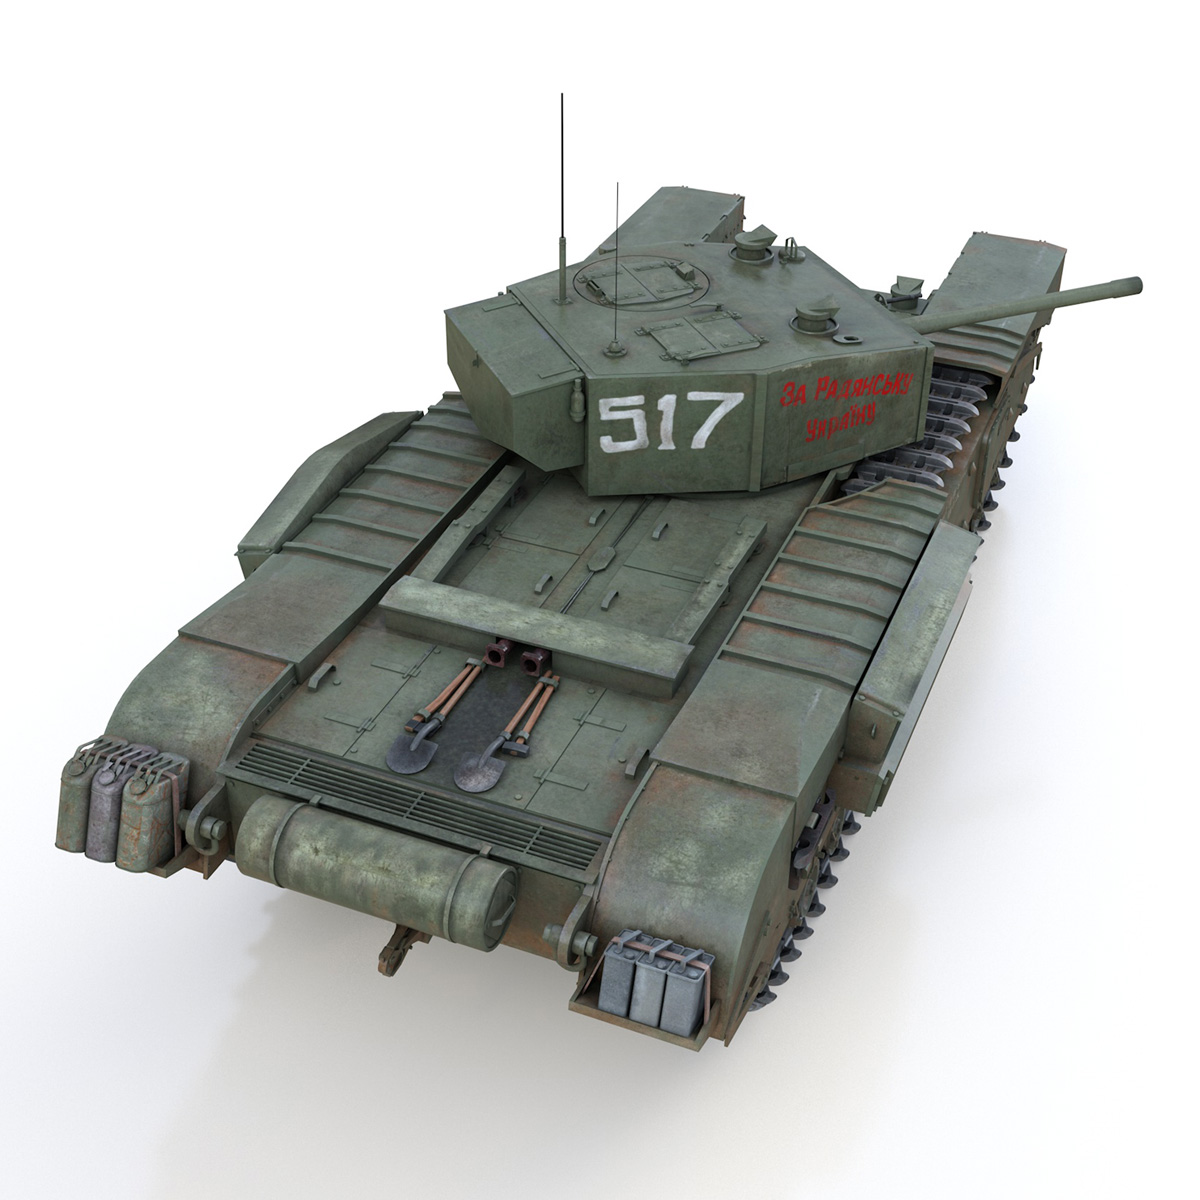 churchill mk iii - 517 - soviet army 3d загвар 3ds fbx c4d lwo obj 272978